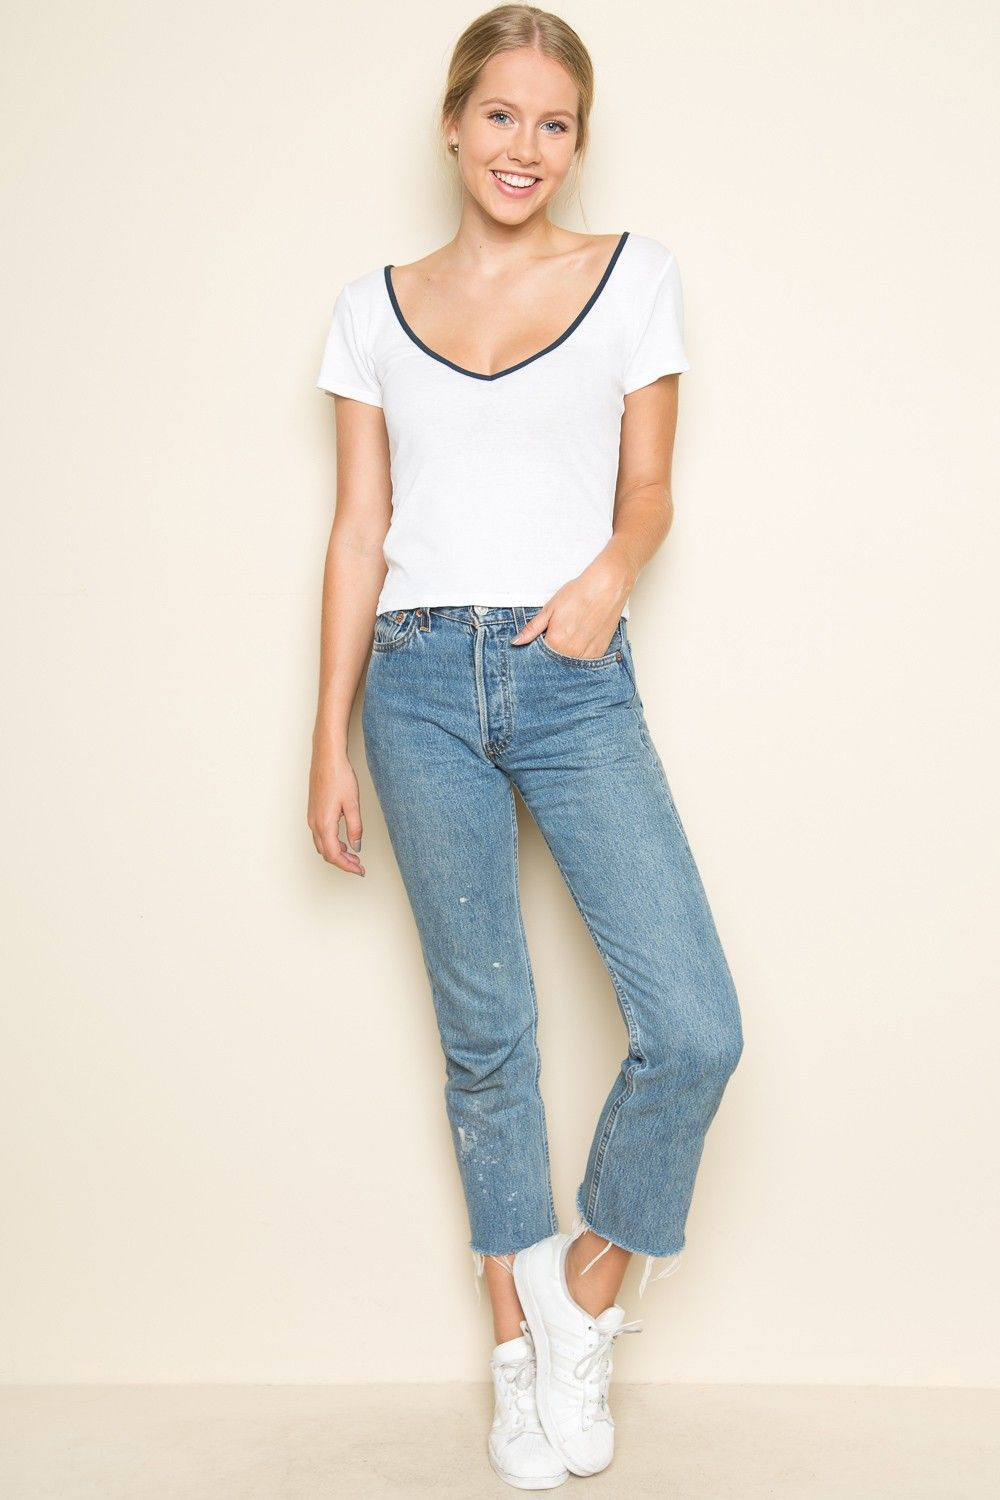 Favoloso Brandy ♥ Melville   Billie Top - Clothing   New Arrivals  KP85